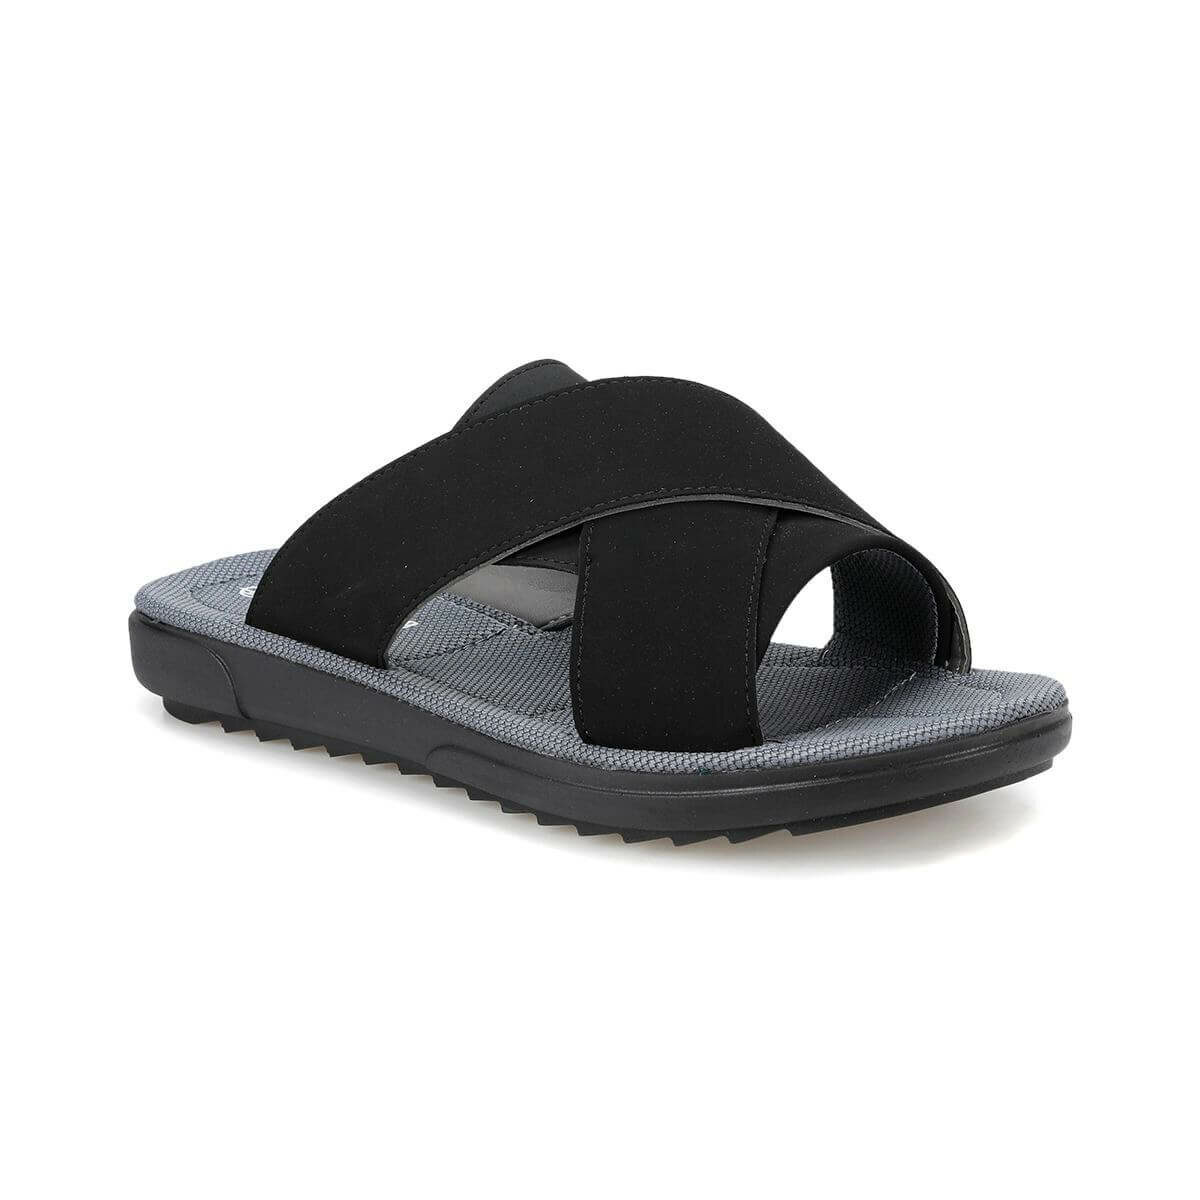 FLO CMPR-1 Black Male Slippers Panama Club